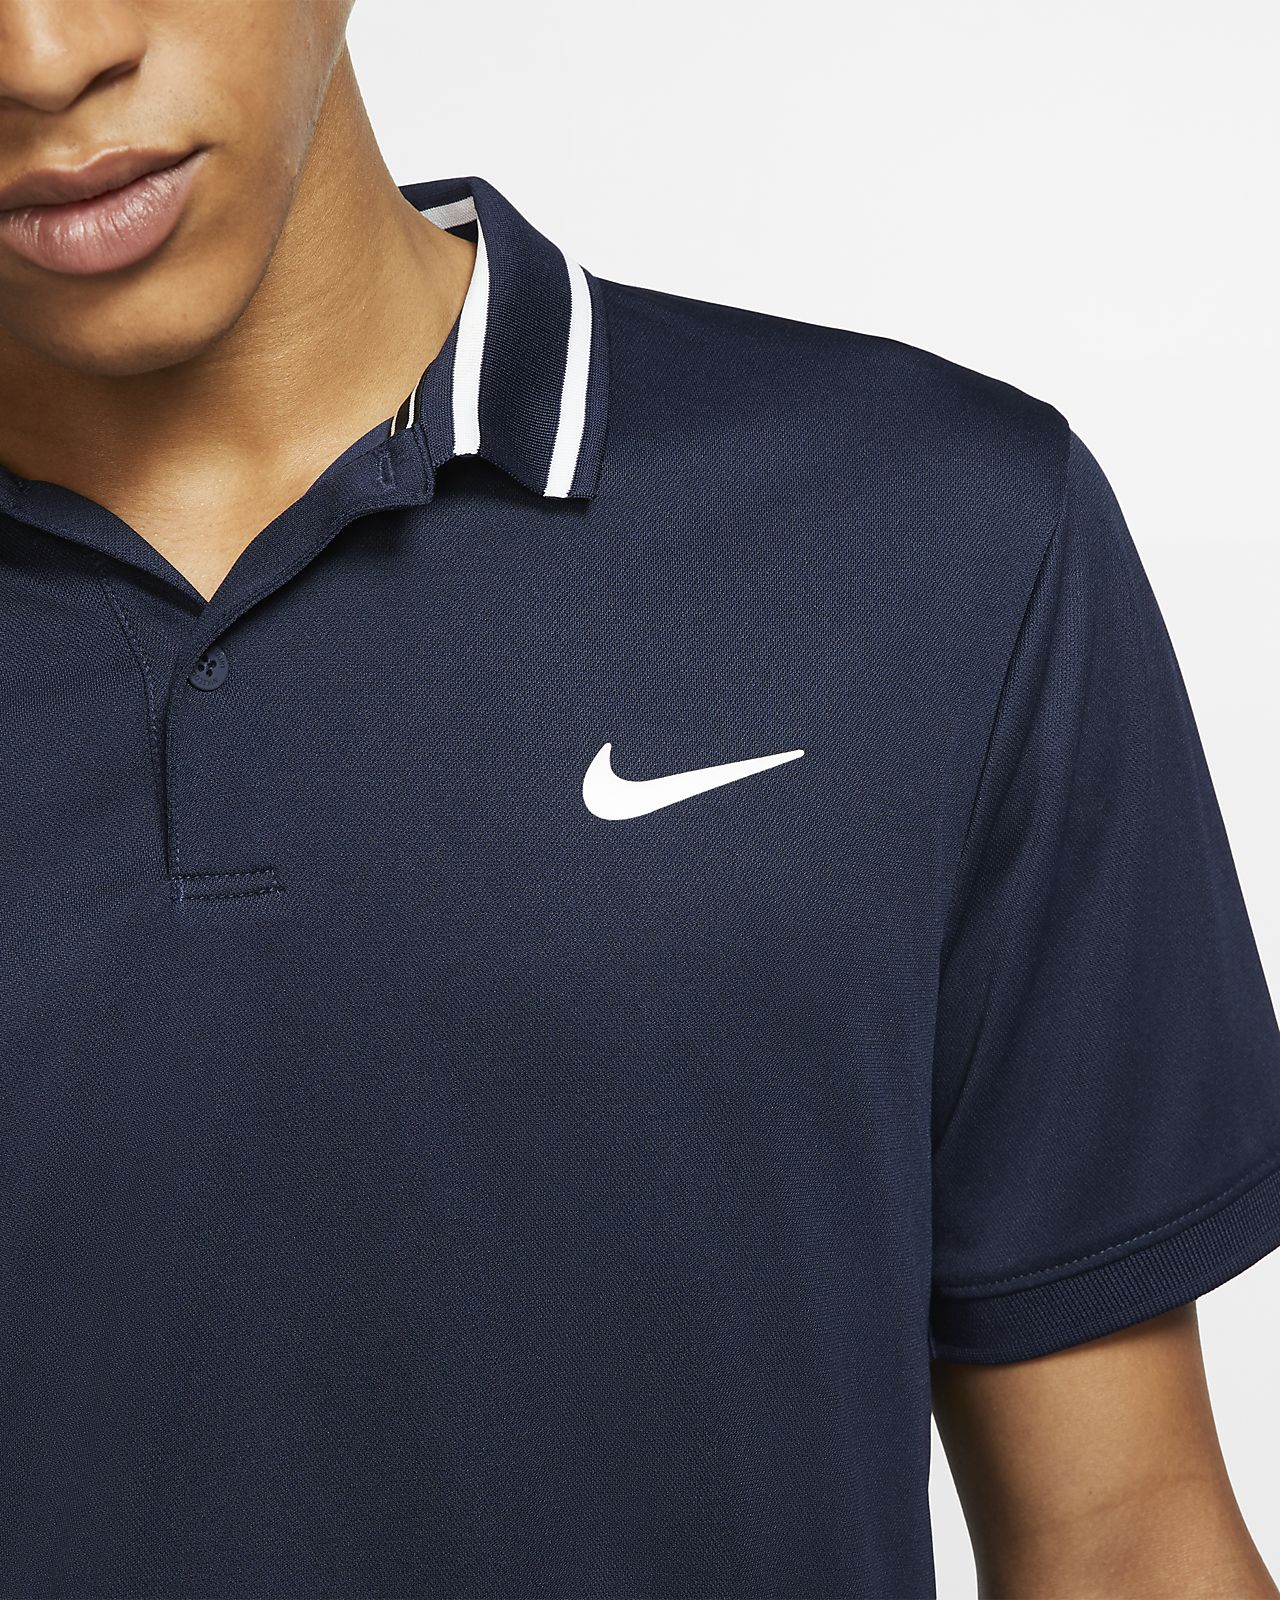 NikeCourt Dri FIT Men's Tennis Polo